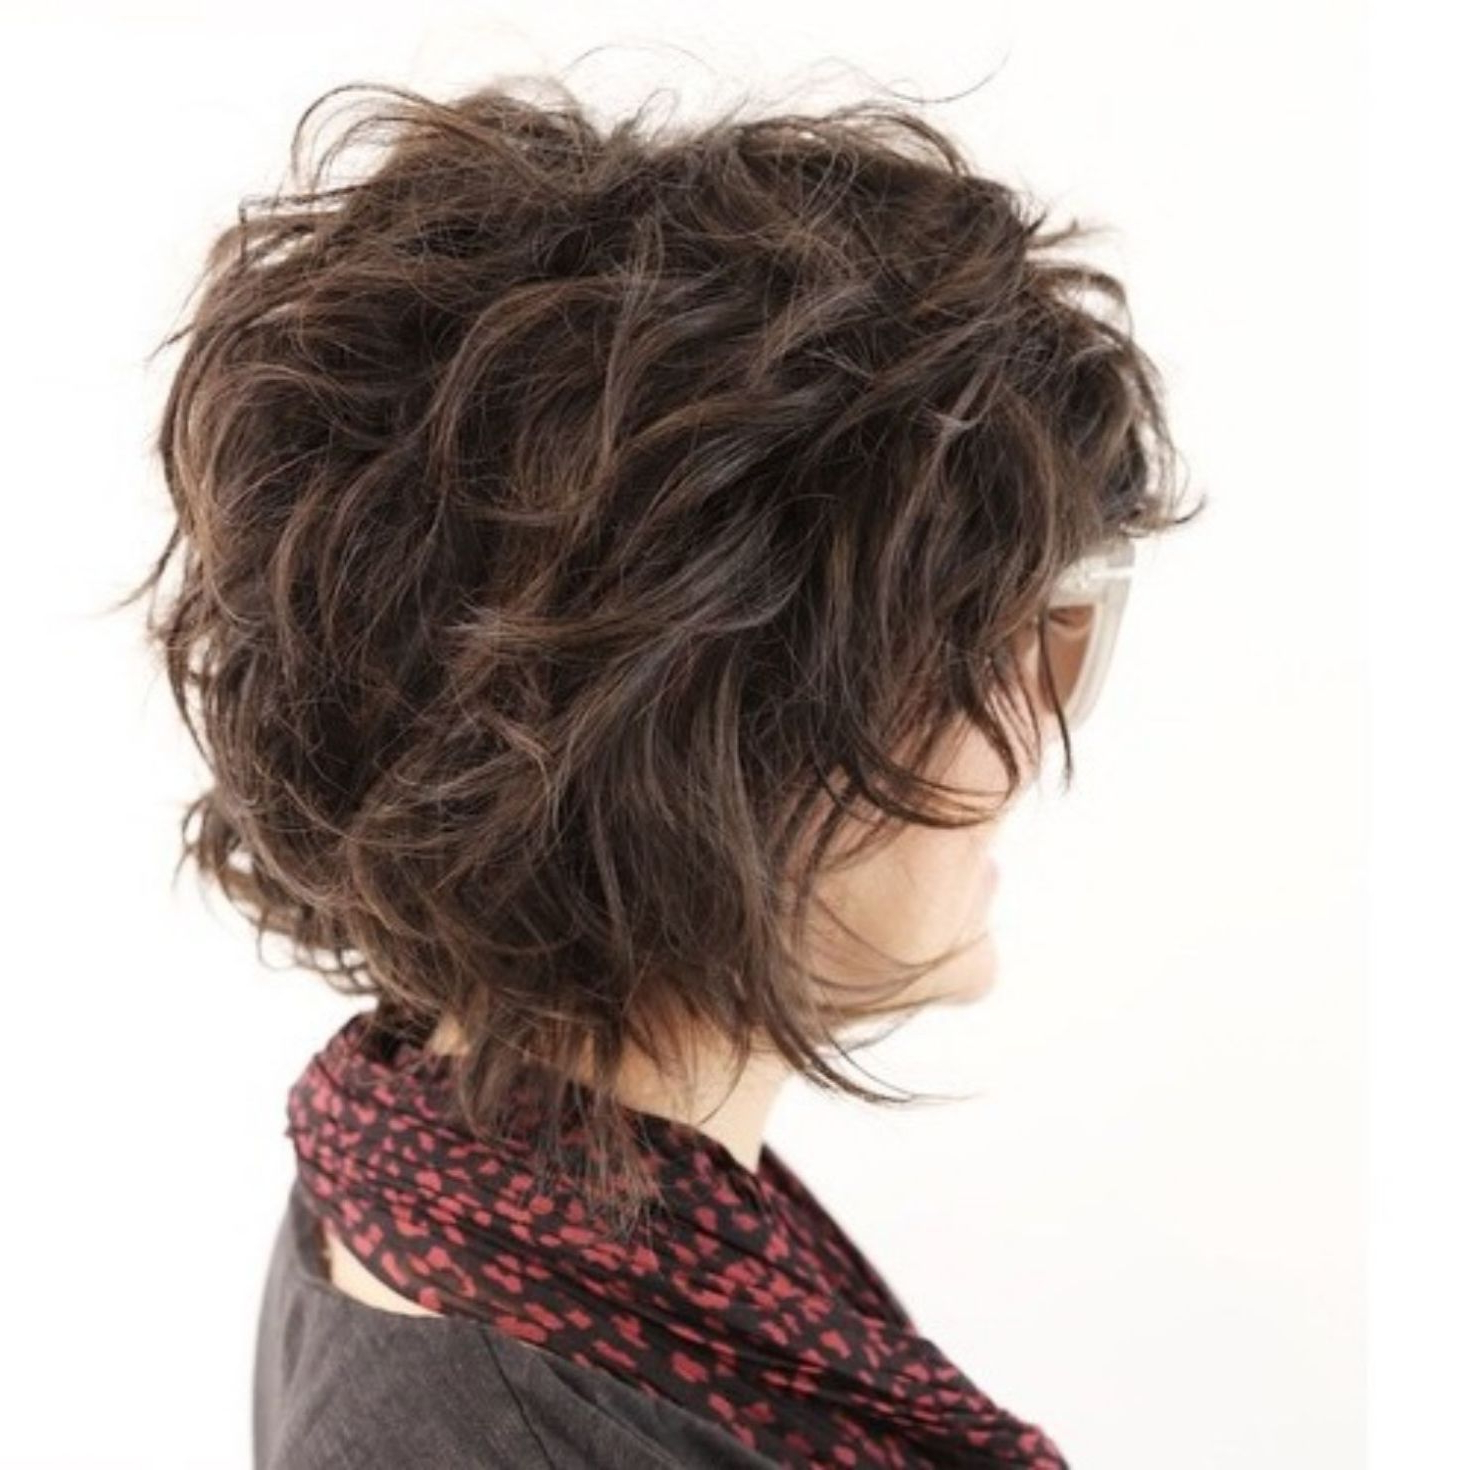 60 Most Prominent Hairstyles For Women Over (View 14 of 20)